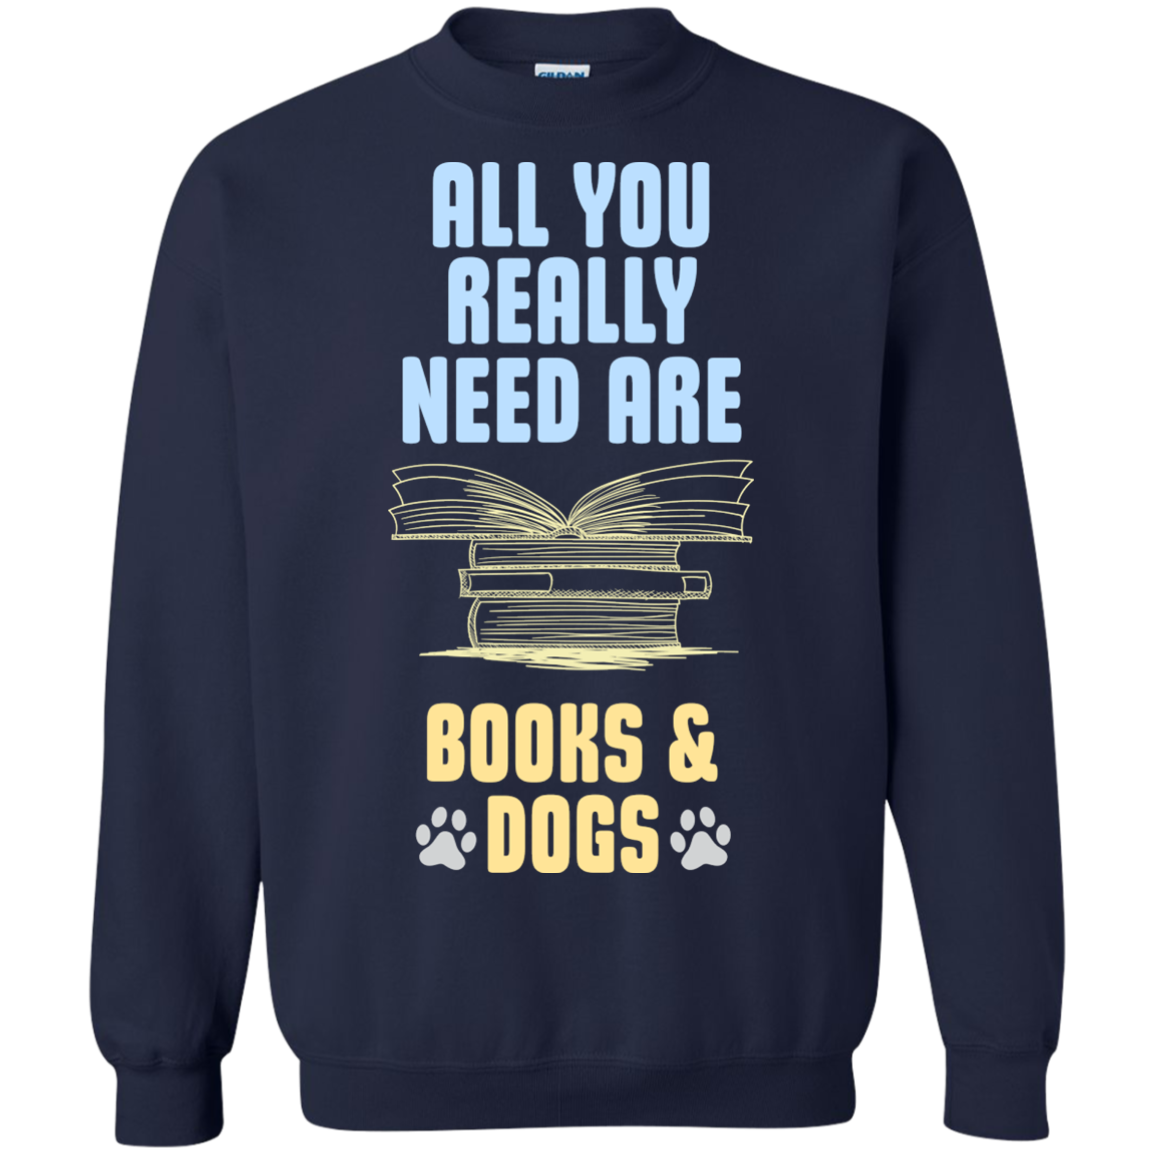 All You Really Need Are Books Amp T-Shirt Hoodie Long sleeve Sweatshirt - The Sun Cat